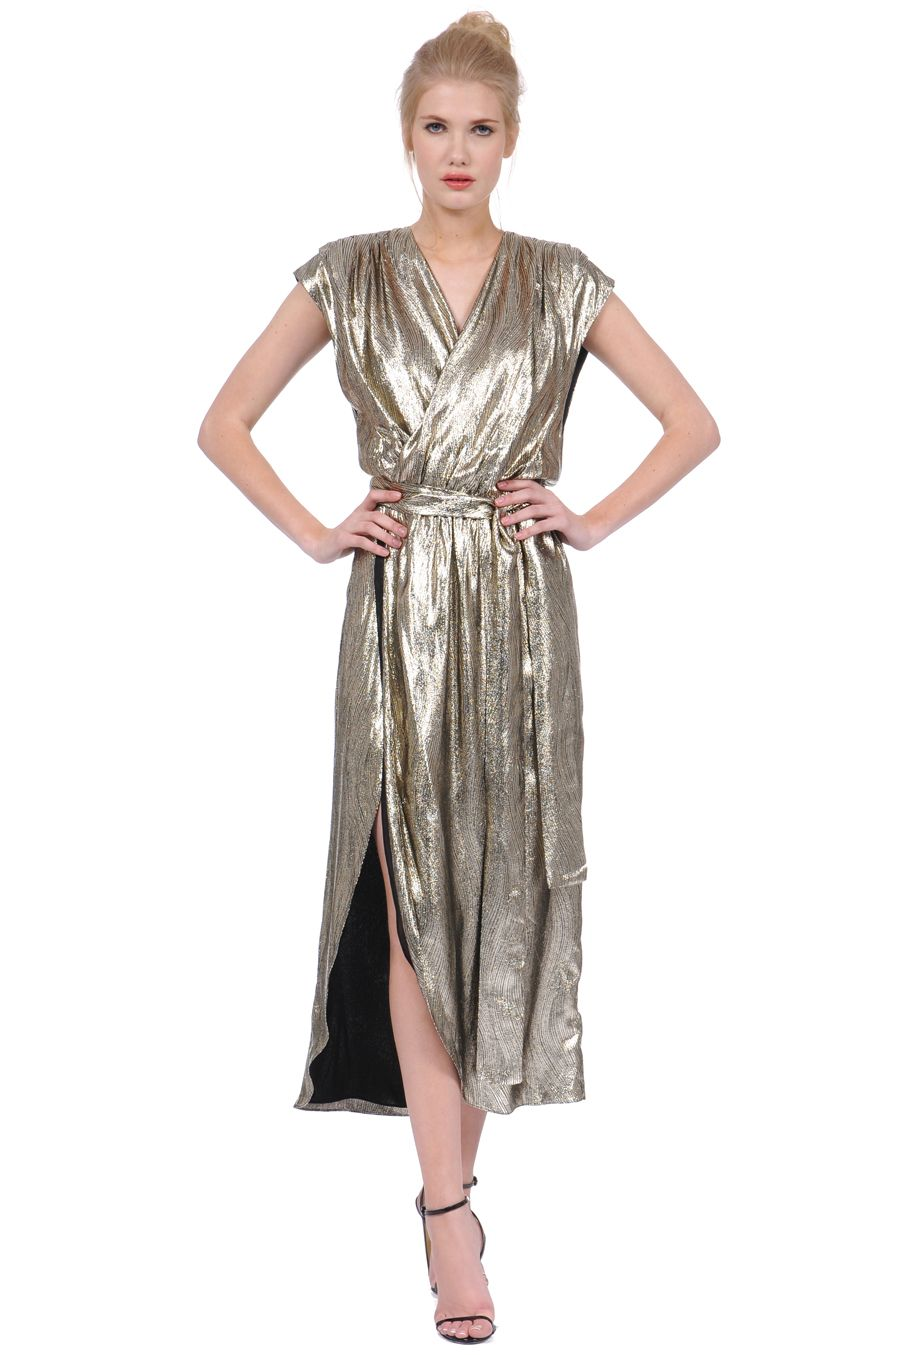 The Disco Wrap Dress In Metallic Cold More Like Liquid Gold Really